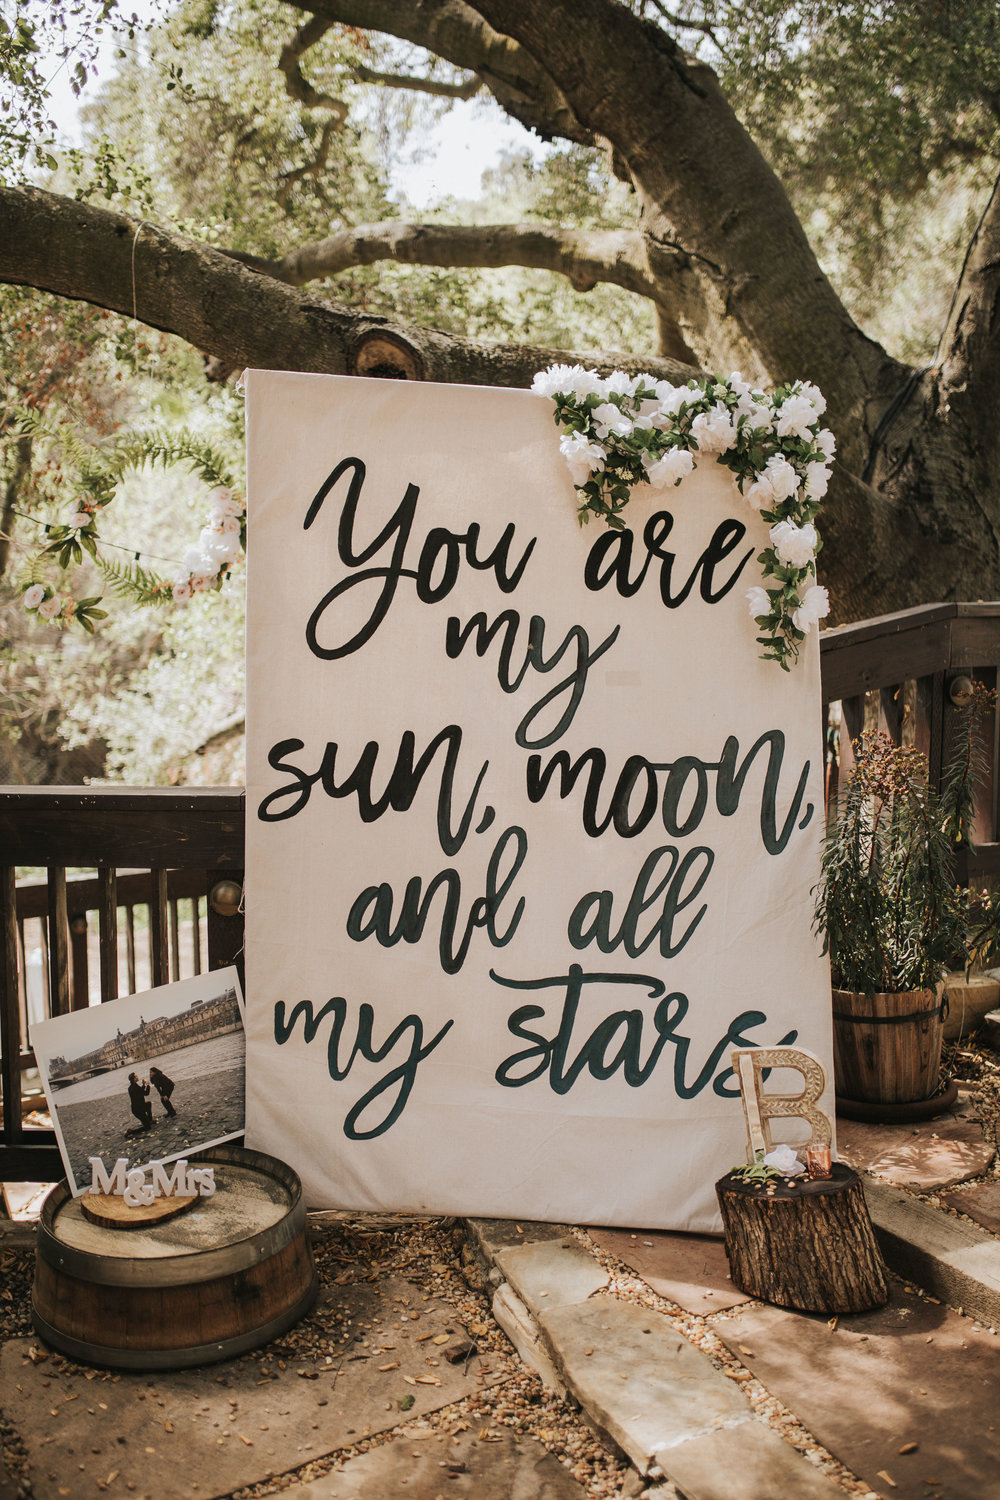 You are my sun moon and all my star sign, The 1909, The 1909 Wedding, Topanga Canyon Wedding, wedding welcome sign ideas